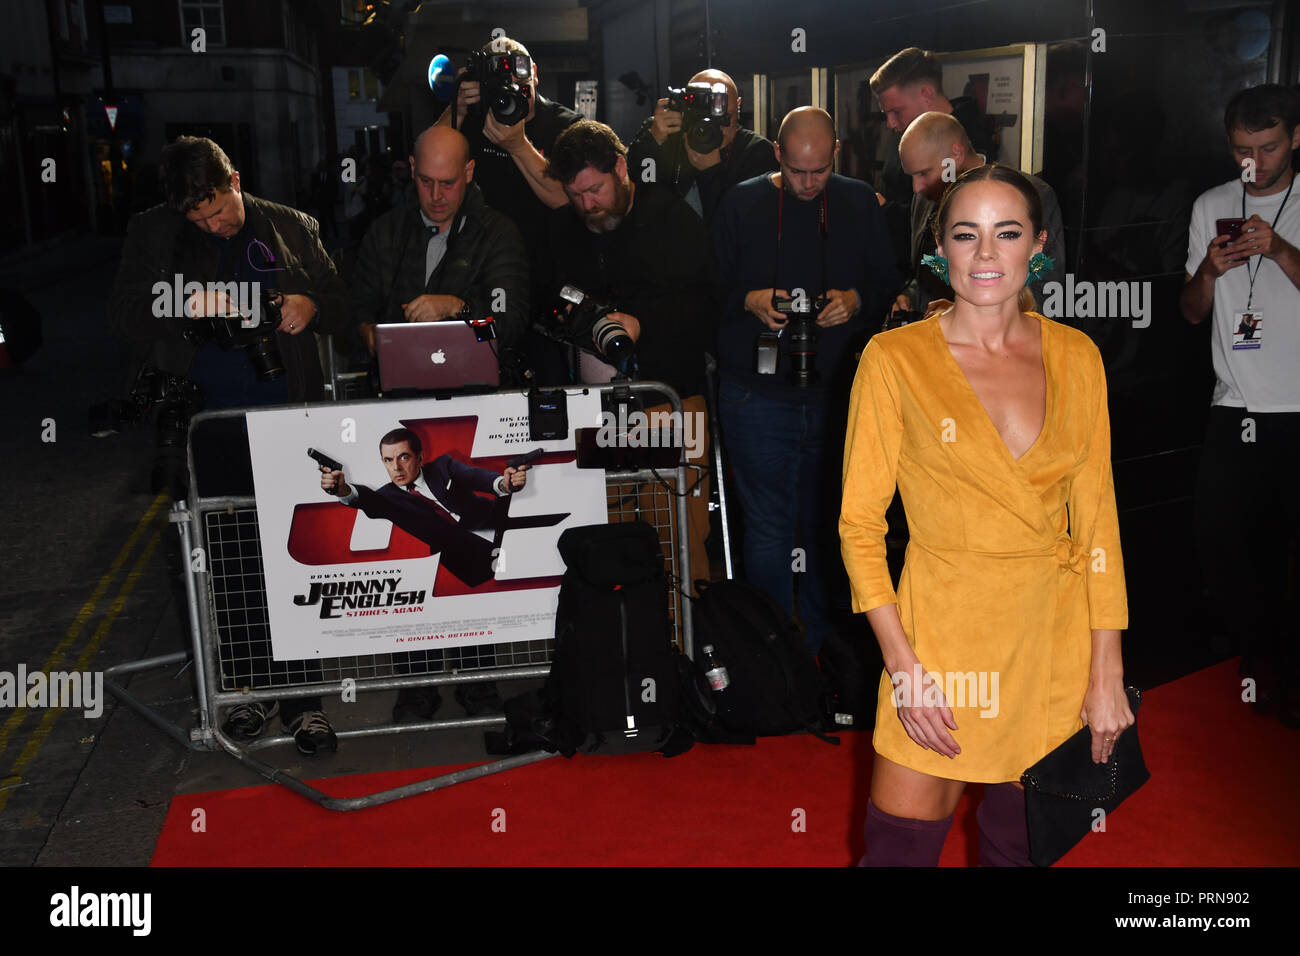 London, UK. 3rd Oct 2018. Emma Conybeare attend Johnny English Strikes Again at CURZON MAYFAIR, London, Uk. 3 October 2018. Credit: Picture Capital/Alamy Live News - Stock Image